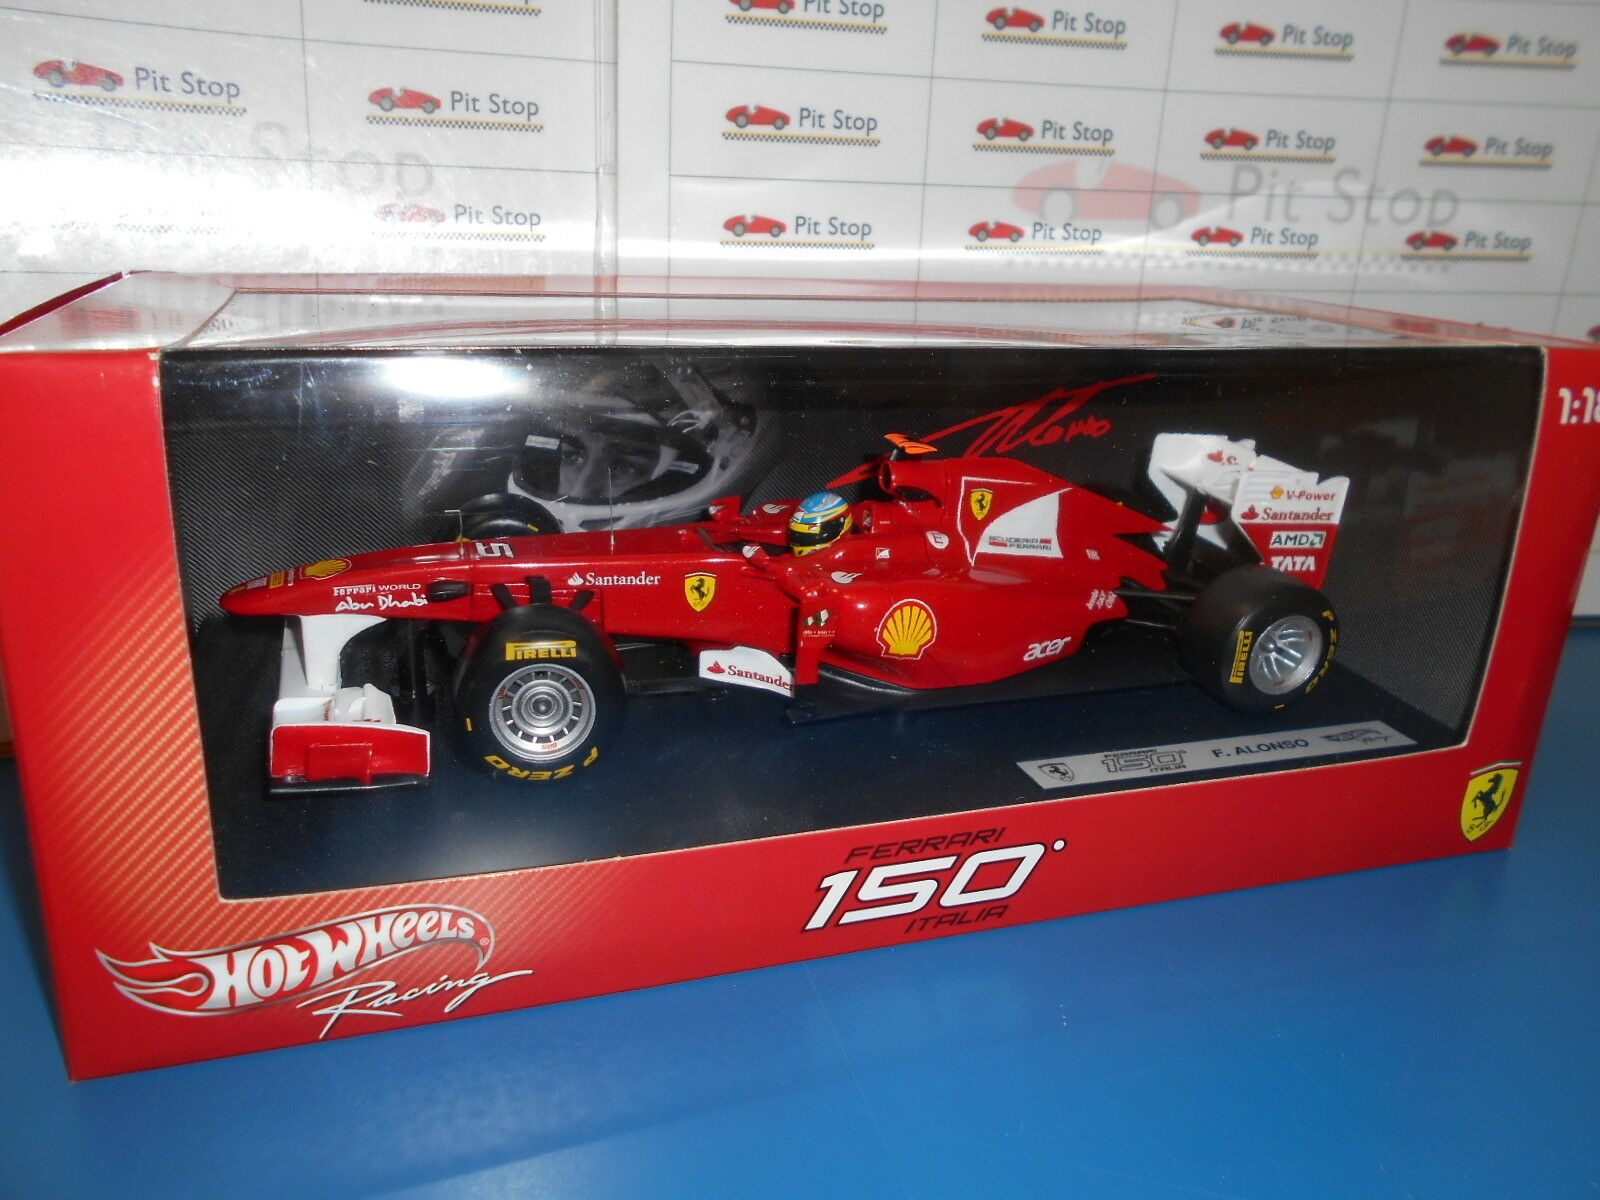 HWW1074A by HOT WHEELS FERRARI 150 ITALIA  5 FERNANDO ALONSO 2011 1 18